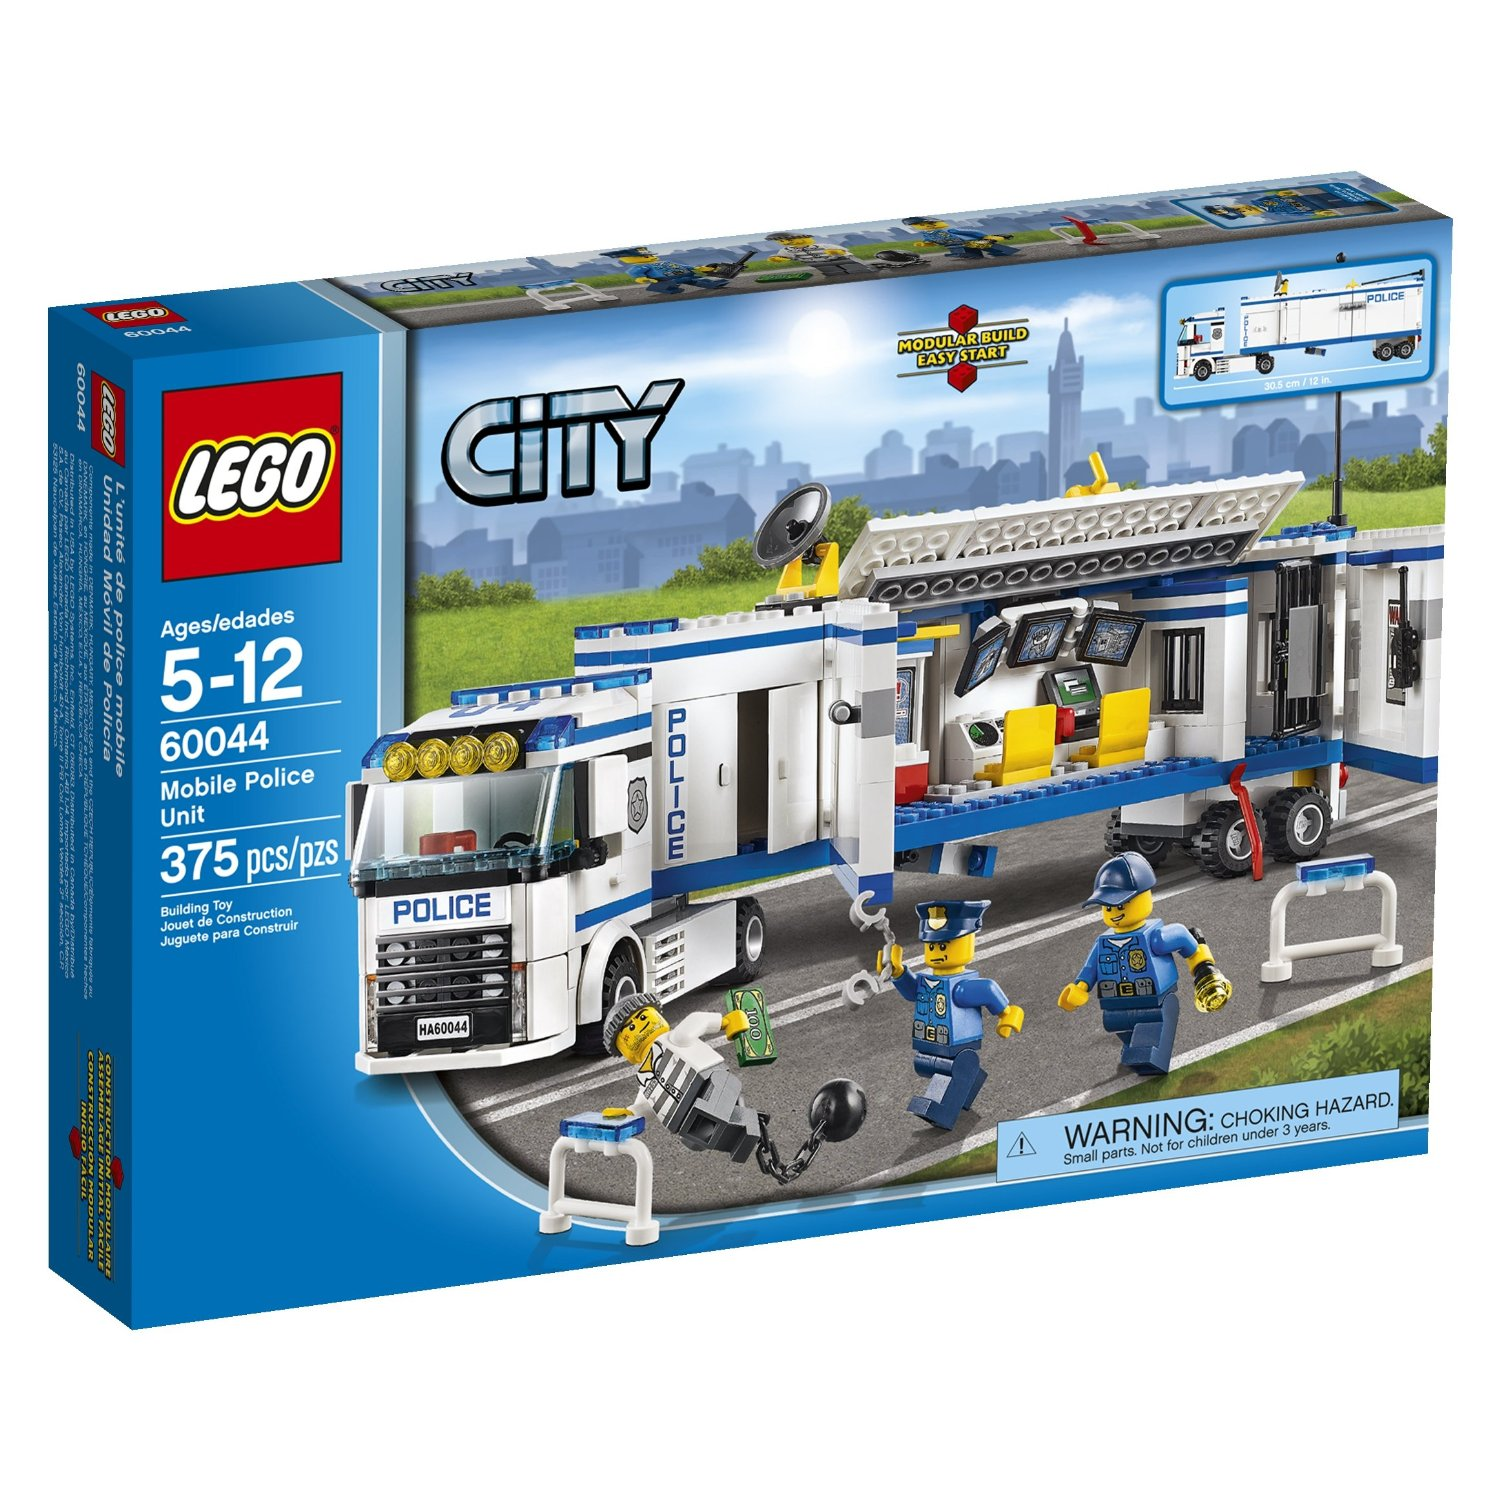 Lego city police mobile police unit only lowest price become a coupon queen - Lego city police camion ...